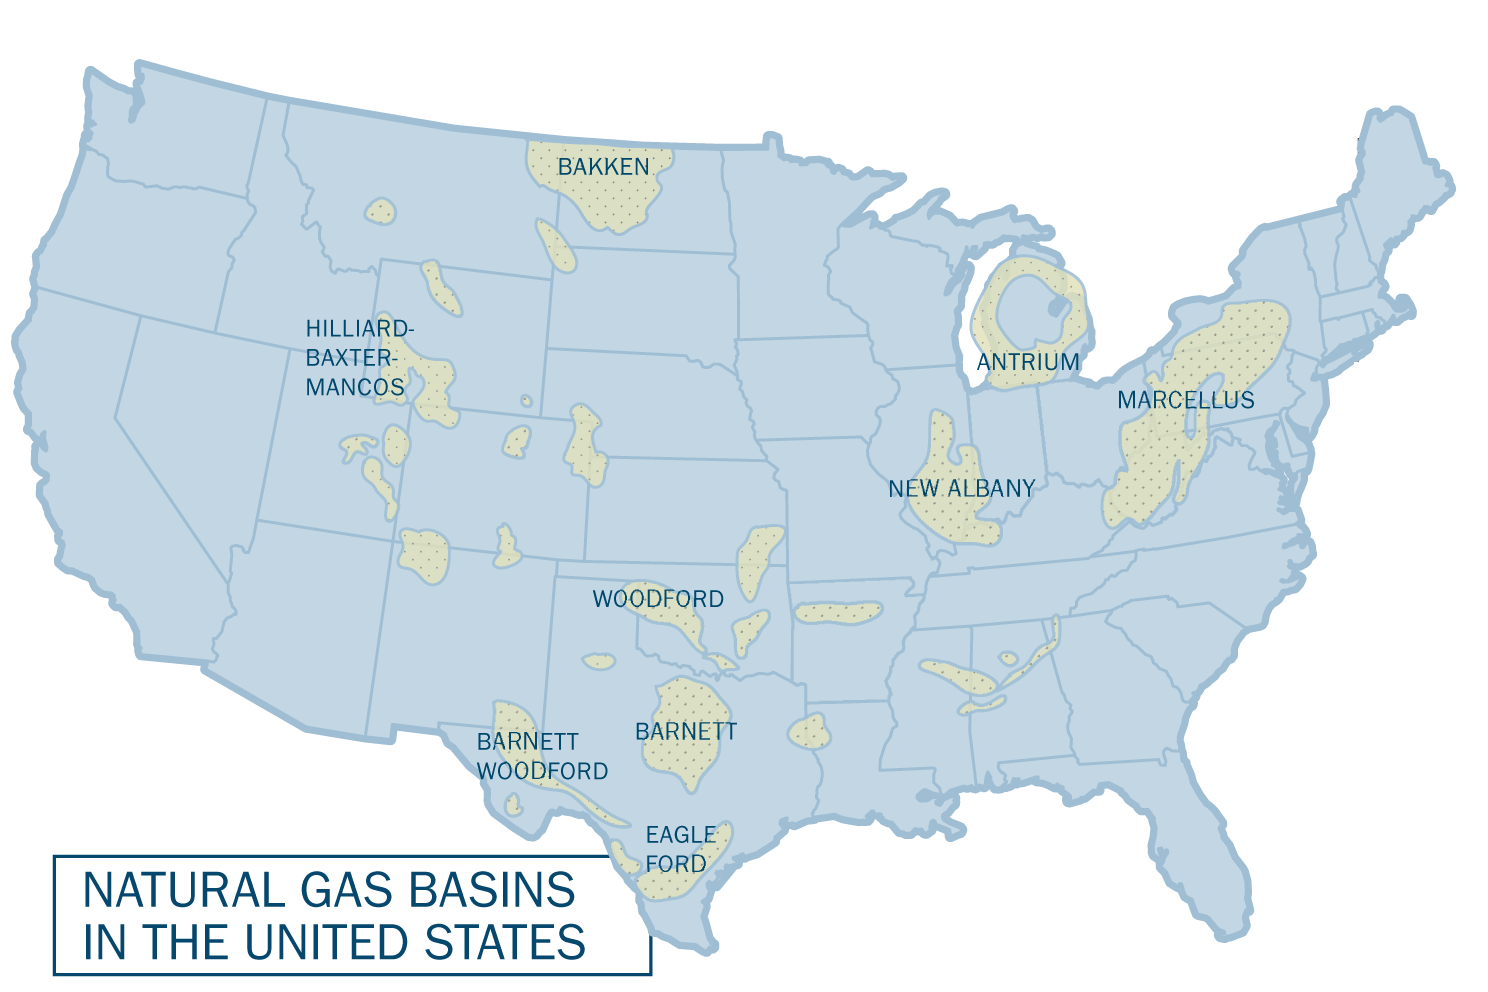 Michael McElroy And Xi Lu On Natural Gas Fracking And US - Map potential natural gas in us